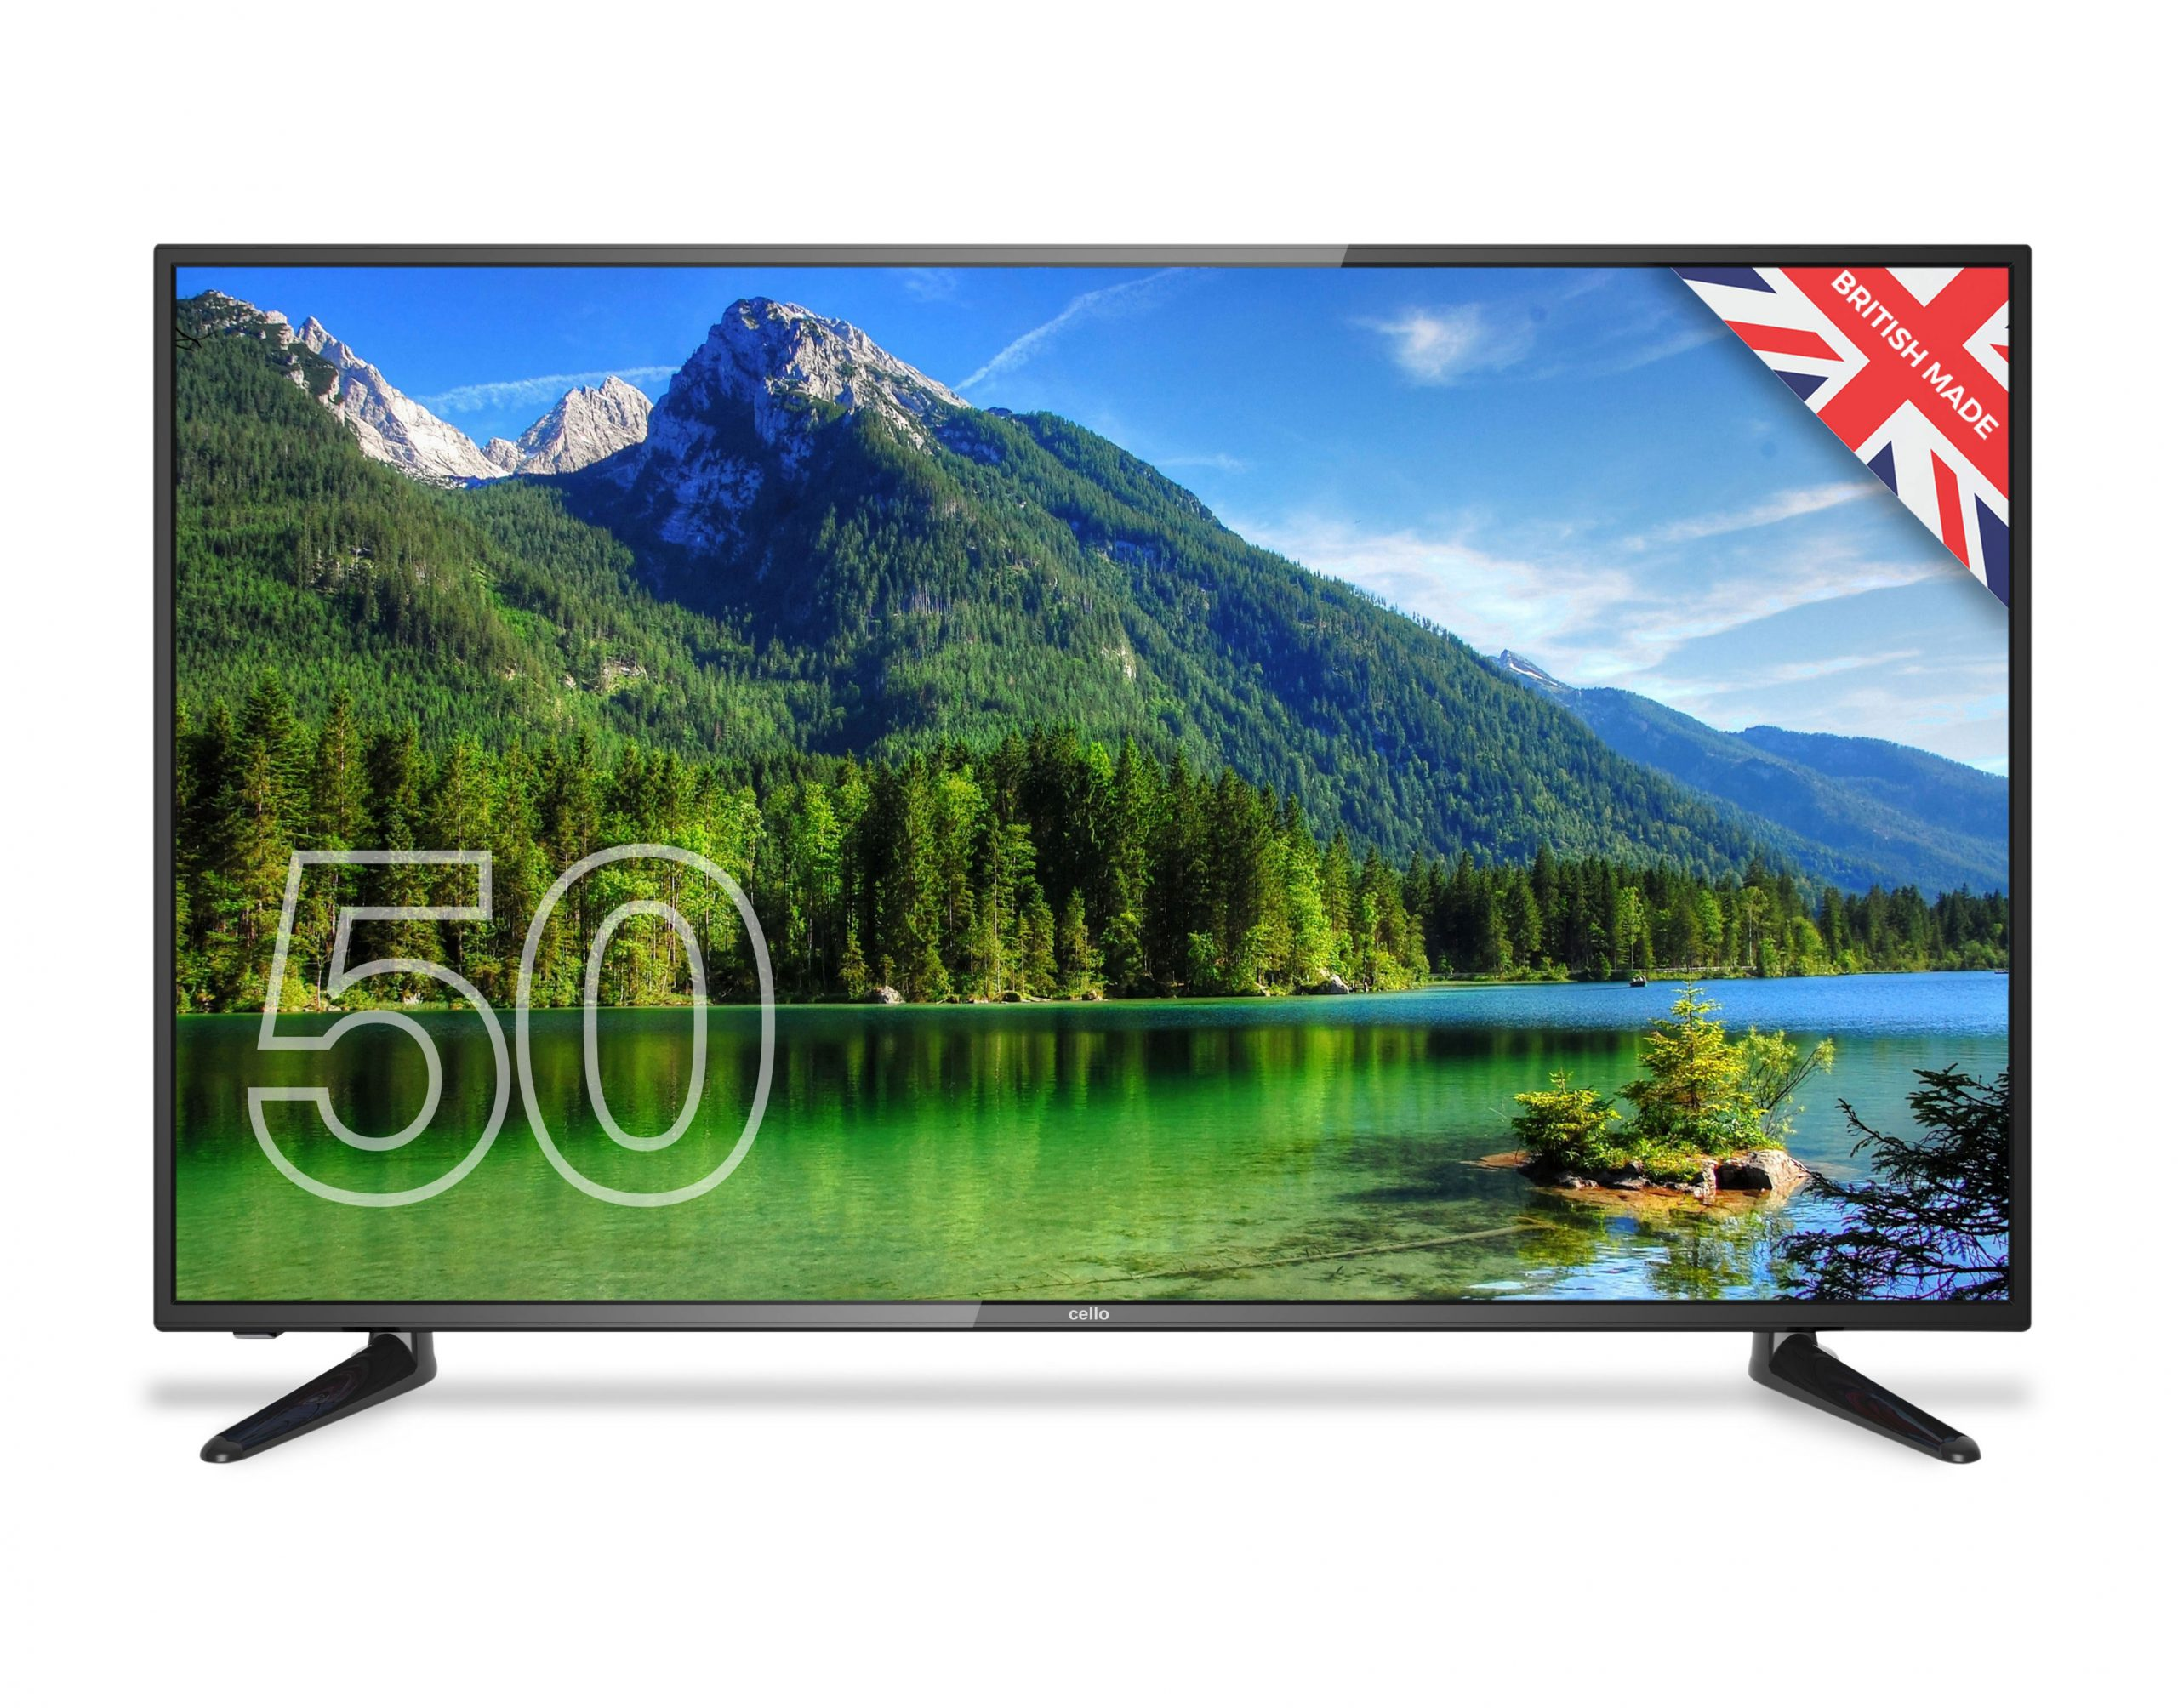 50 Full Hd Led Tv With Freeview T2 Hd Channels And Usb Cello Electronics Uk Ltd